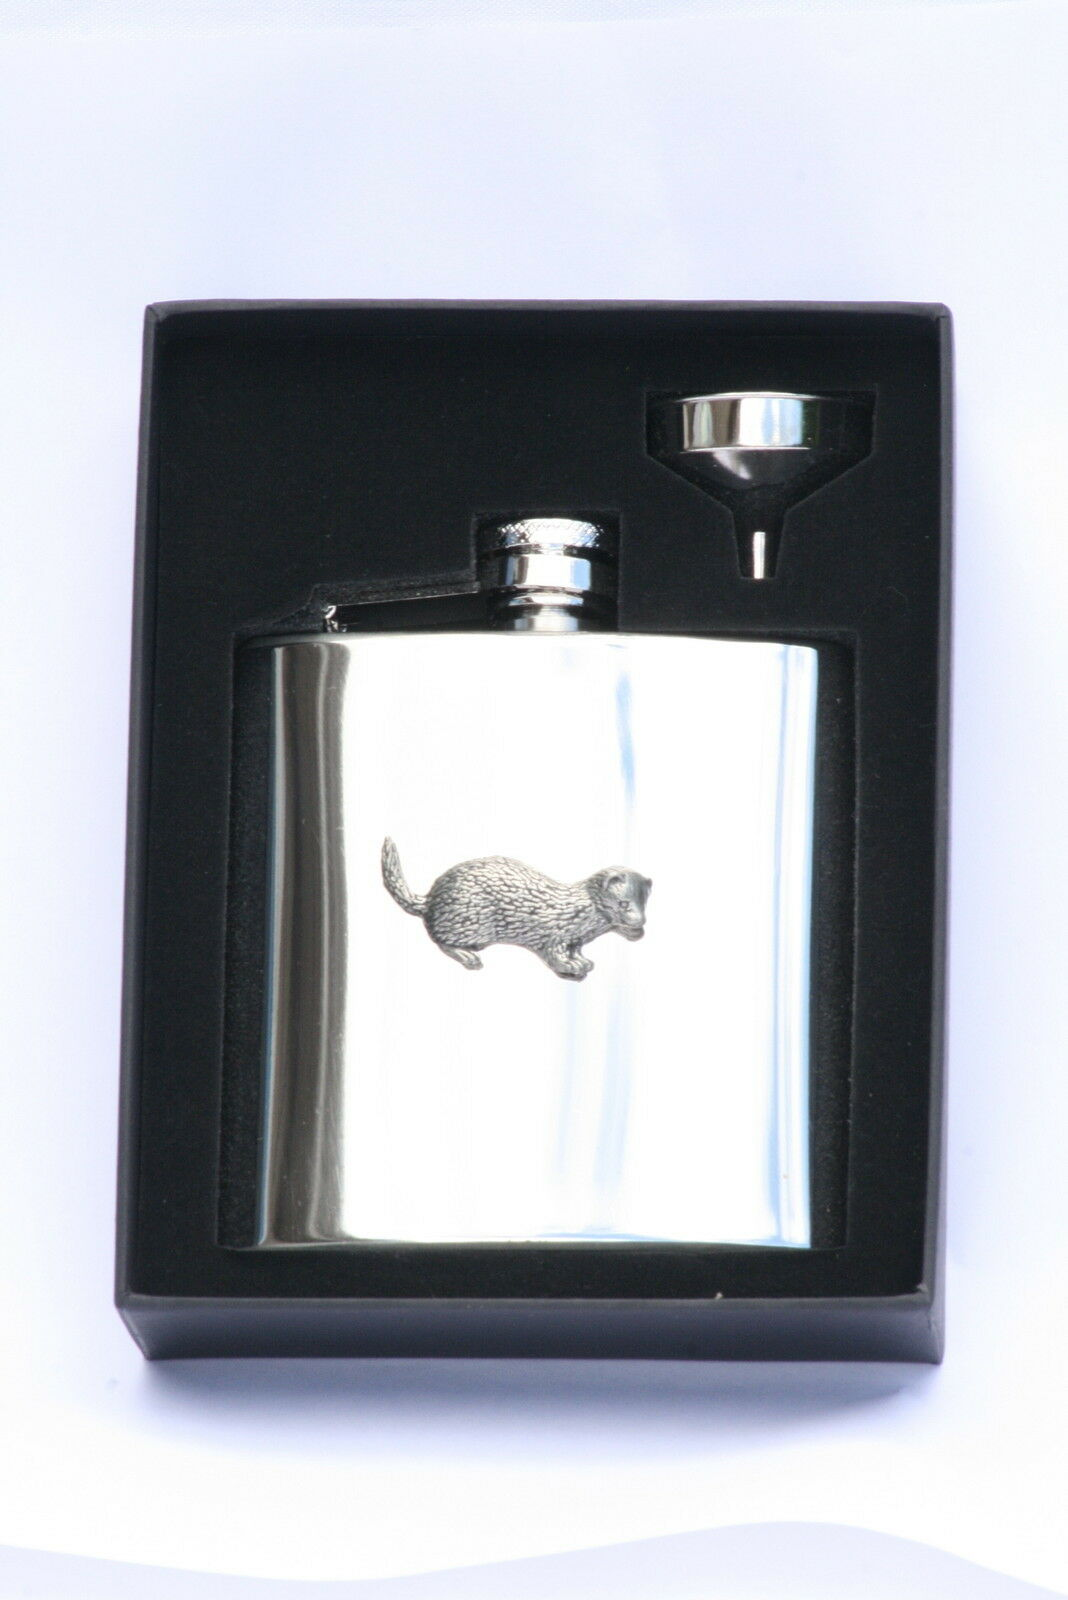 Ferret 6 oz Hip Flask Personalised Ferreting Gift Boxed FREE ENGRAVING